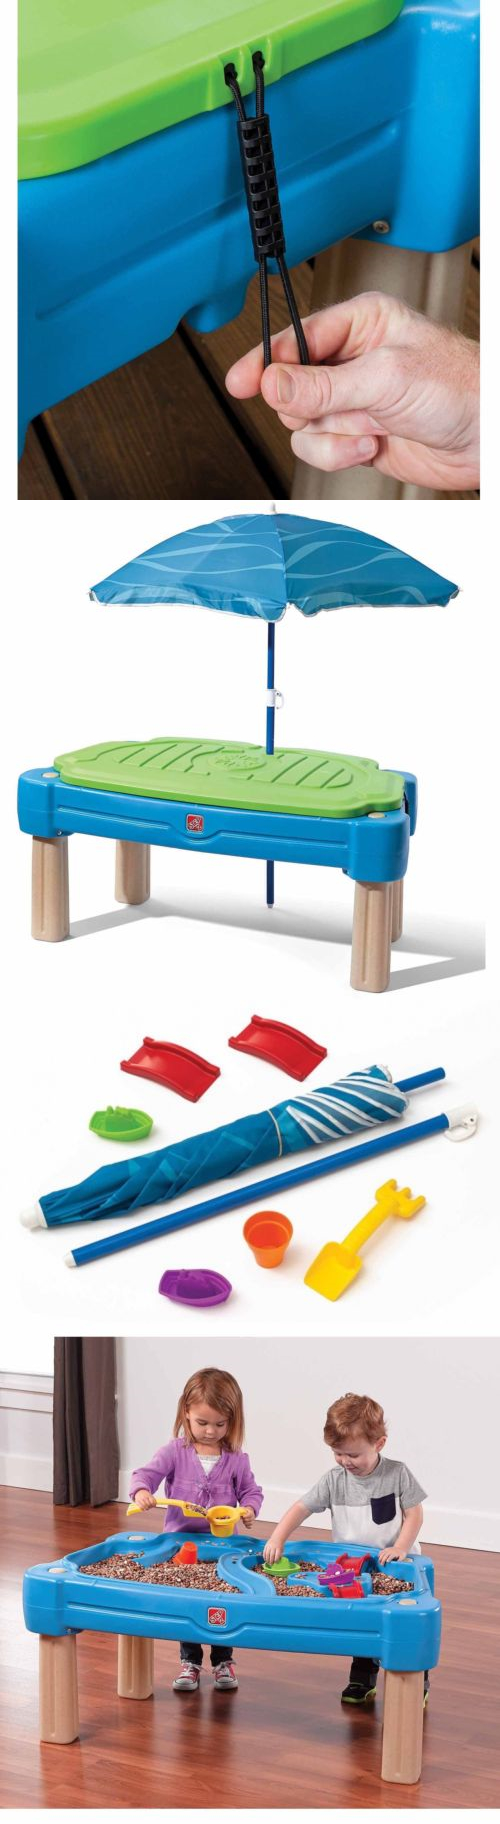 Sandbox Toys And Sandboxes 145990: Step2 Cascading Cove Sand And Water Table  With Cover